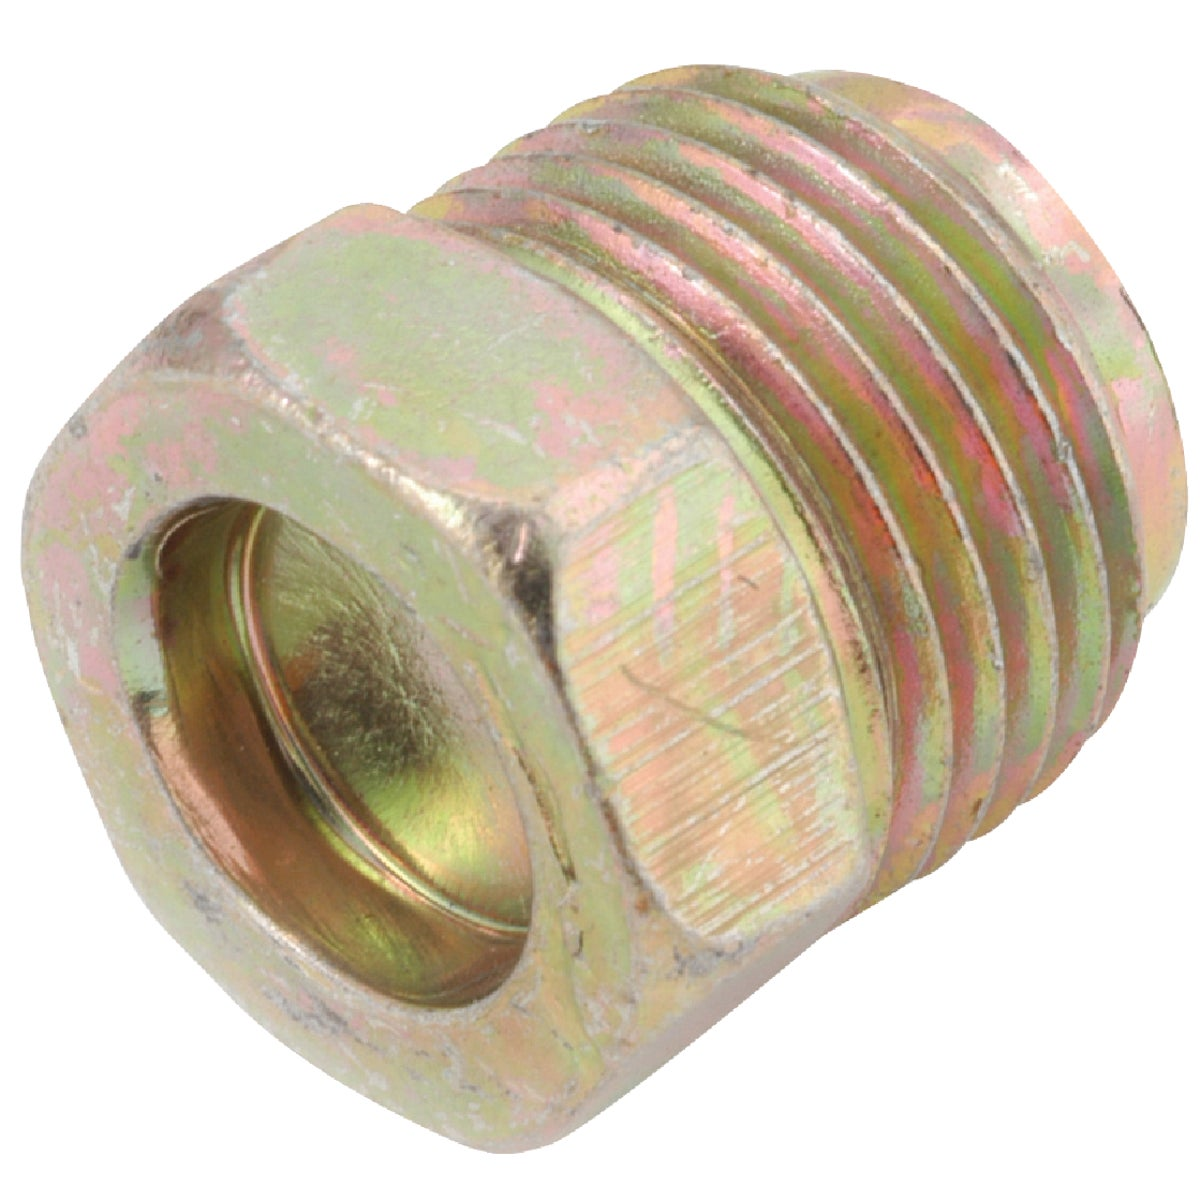 "1/4"" INVERTED PLUG - 54339-04 by Anderson Metals Corp"